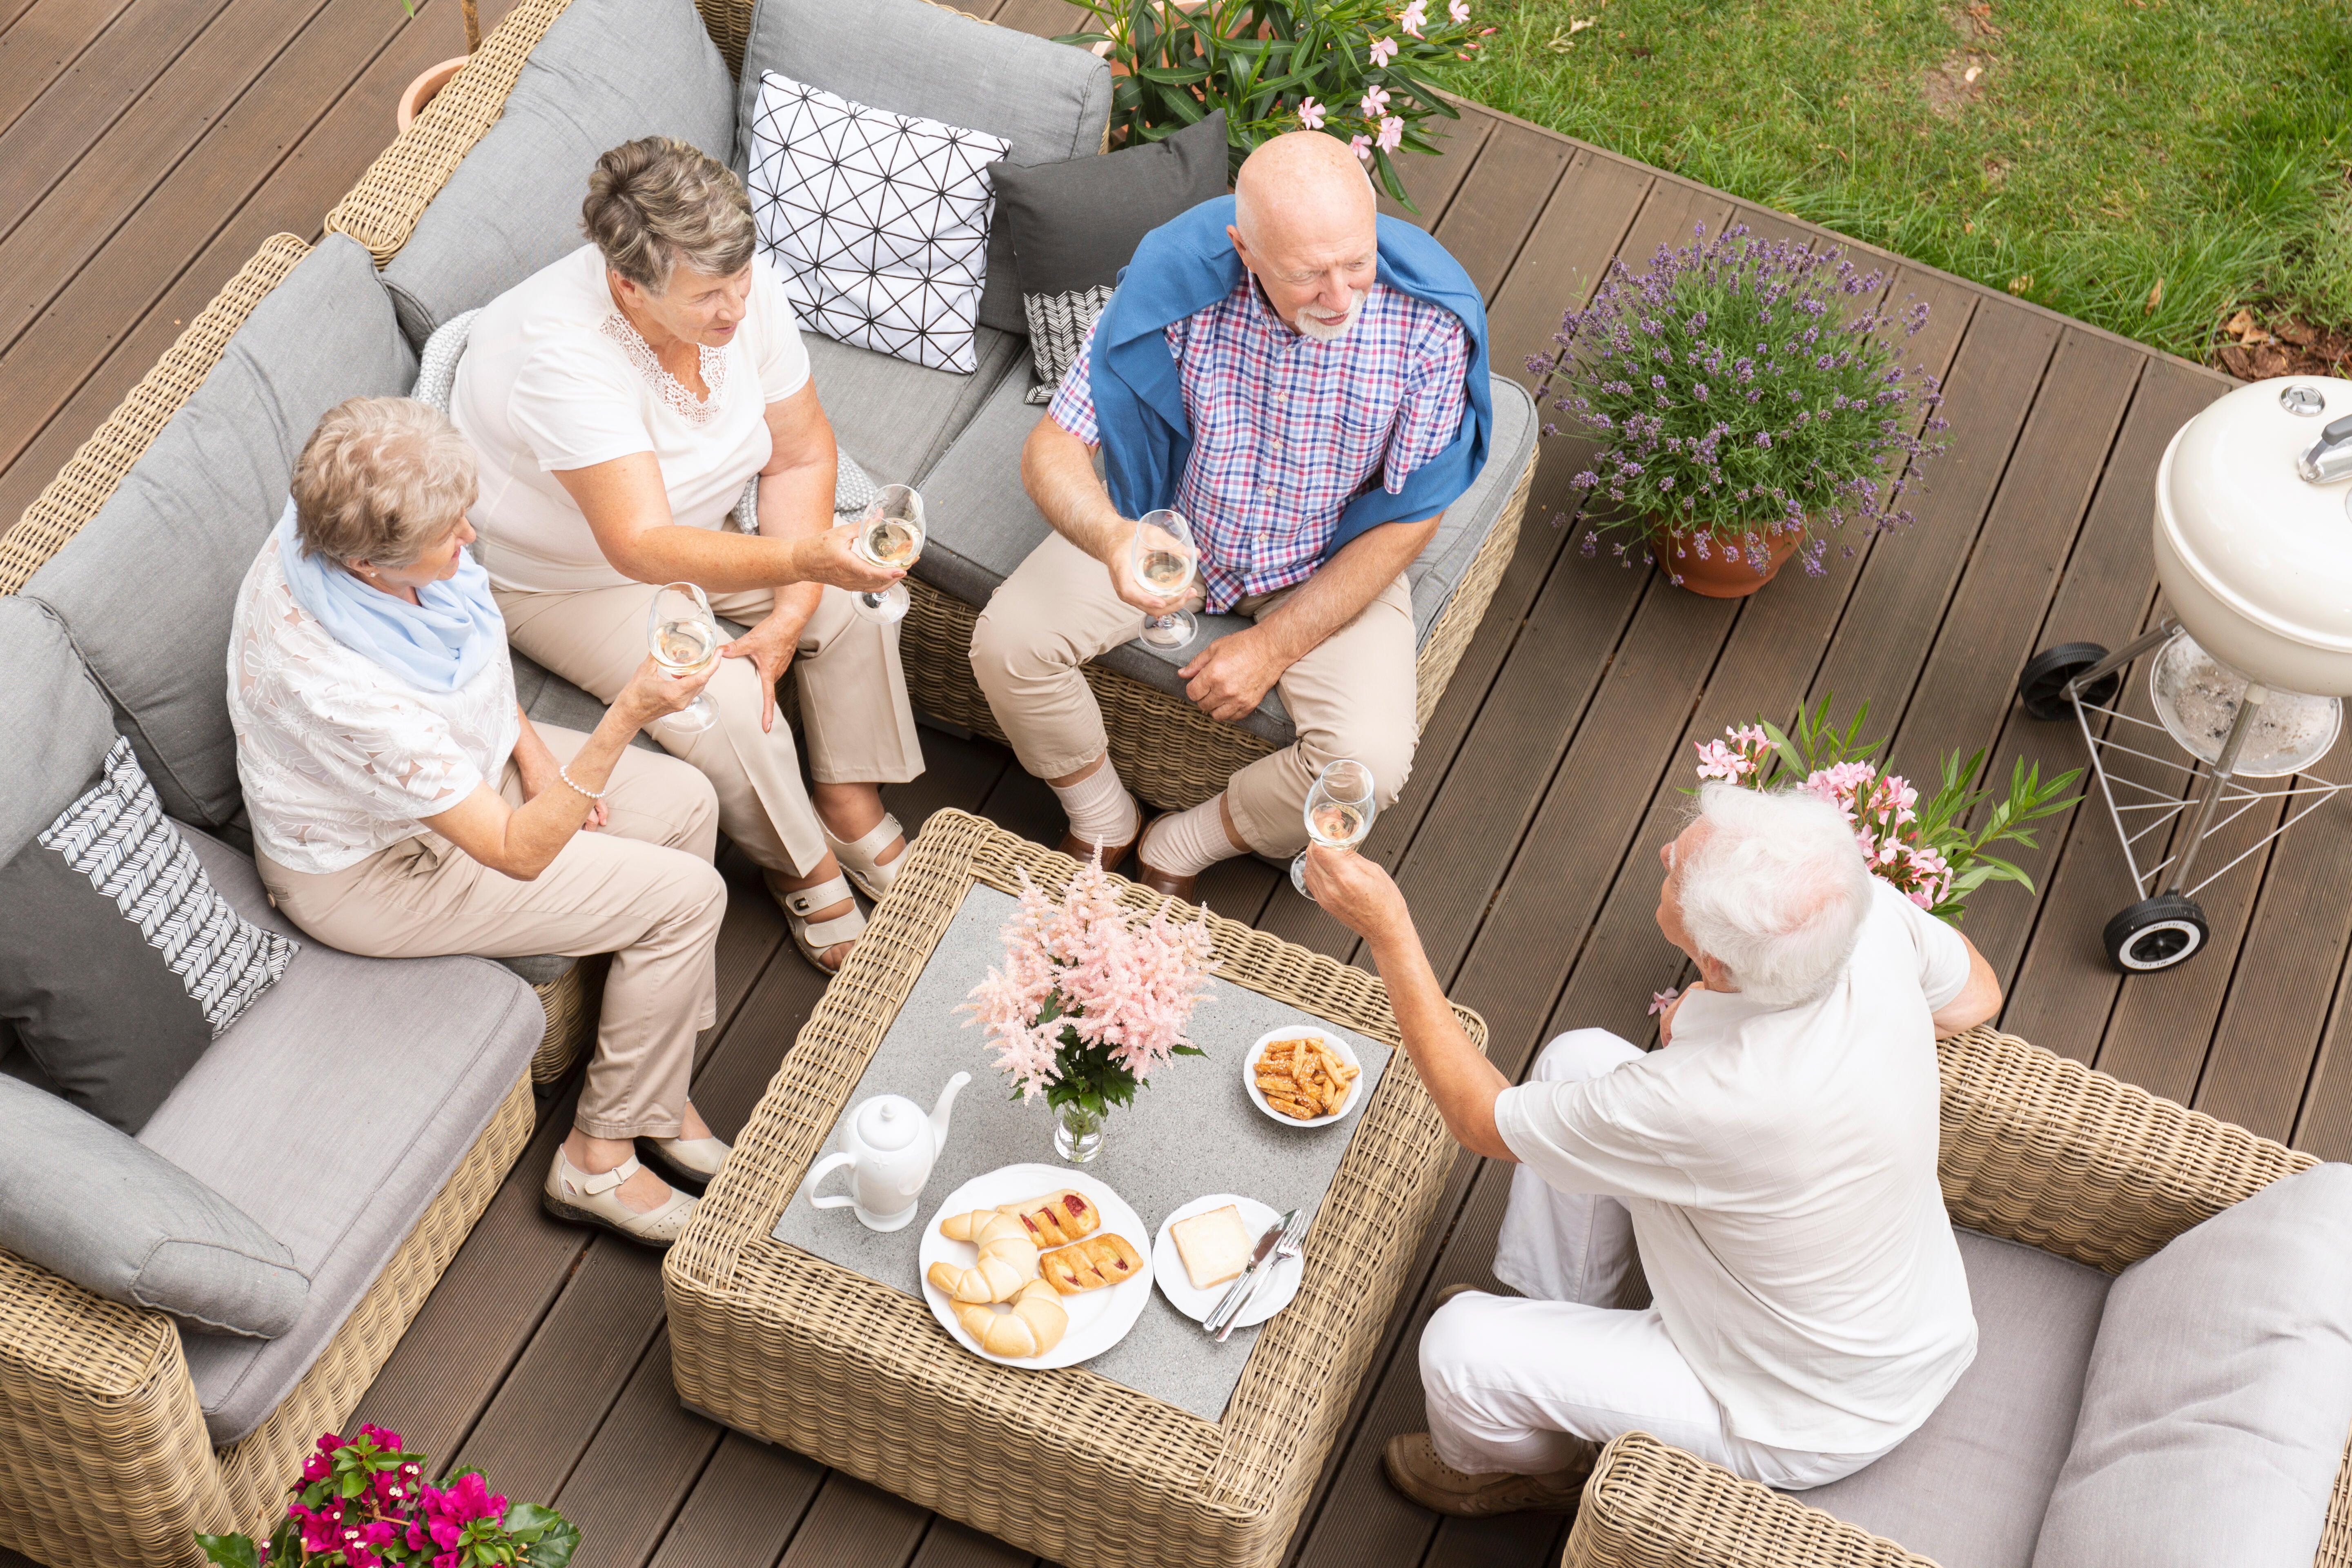 Enjoy The Outdoors With Great Garden Furniture Sets Patio Furniture Buying Guide